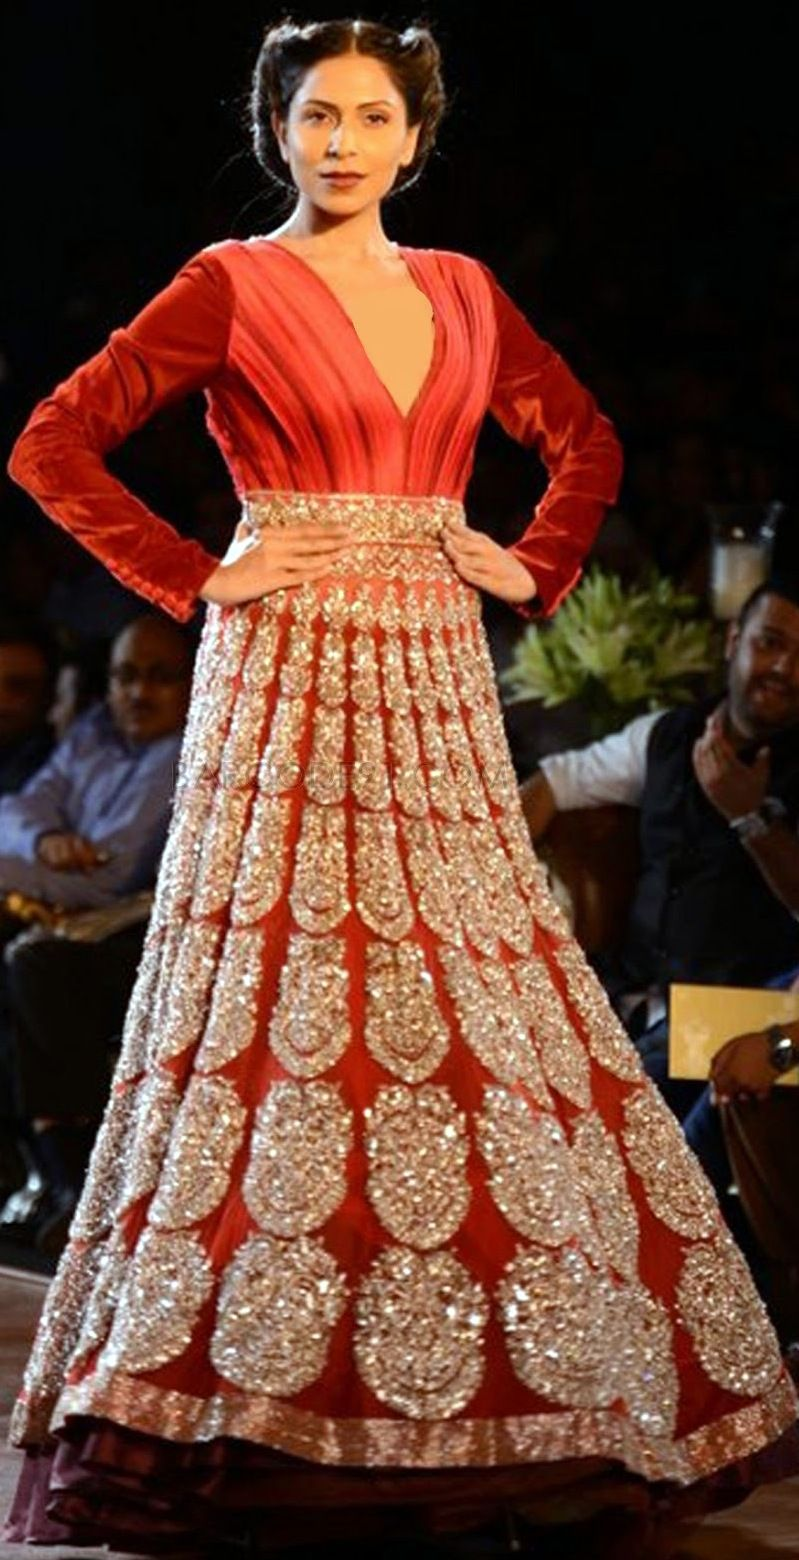 30 Royal Indian Wedding Cant Get Better Than This Manish Malhotra